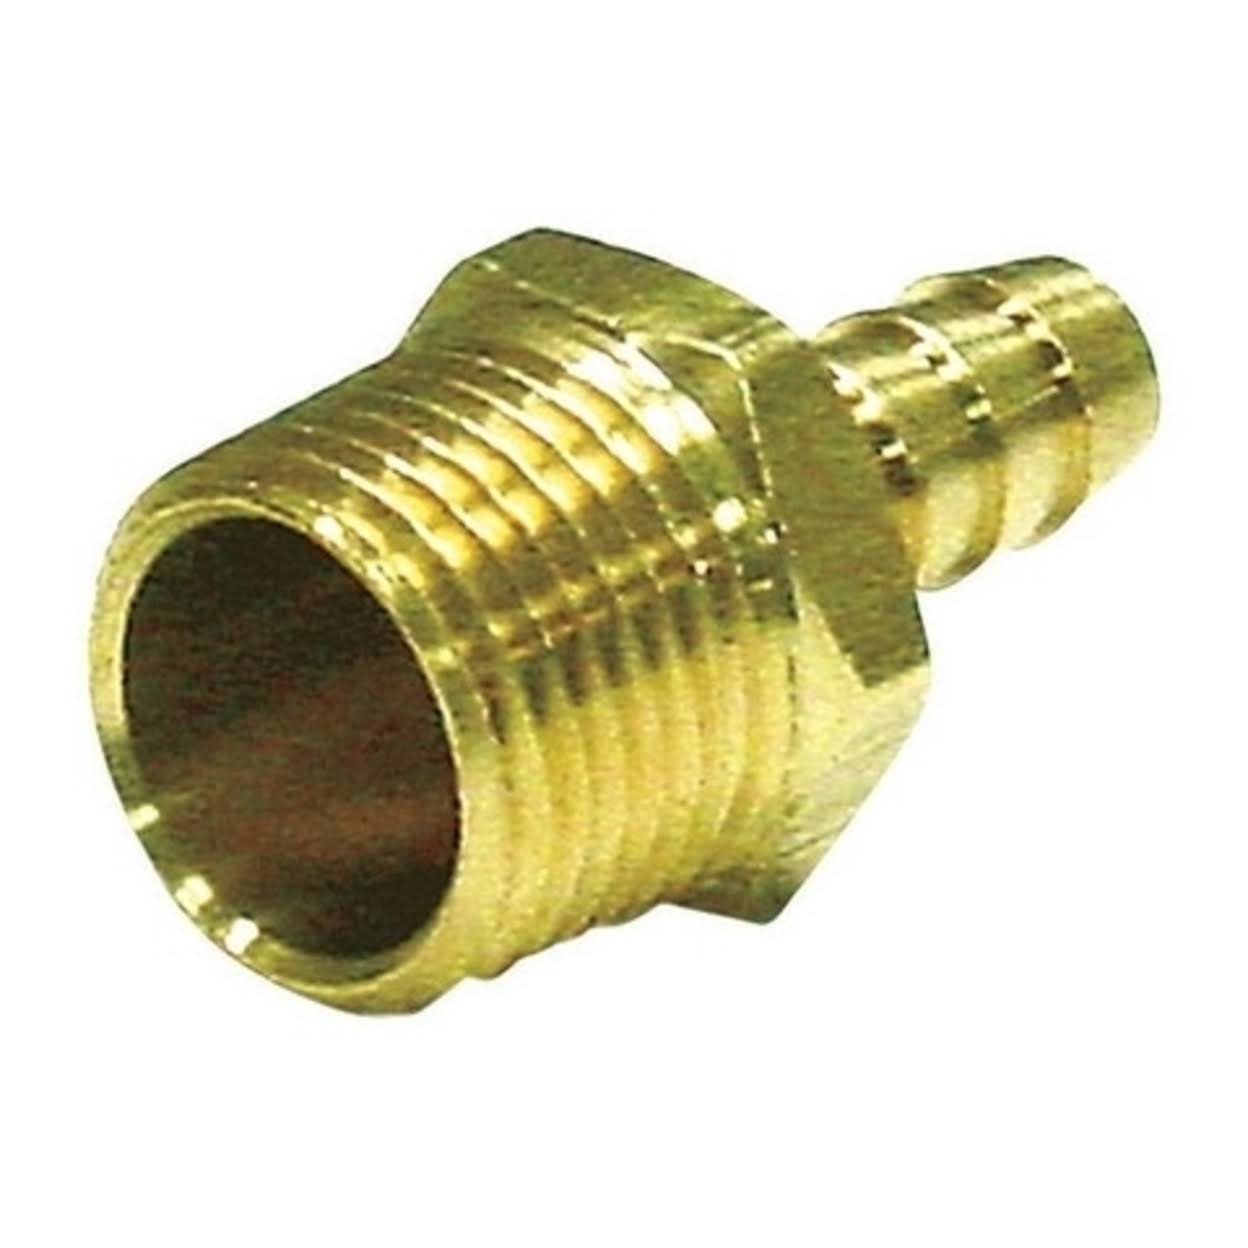 "JMF 4504288 Hose Barb - Lead Yellow Brass, 5pk, 1/2"" x 3/8"""